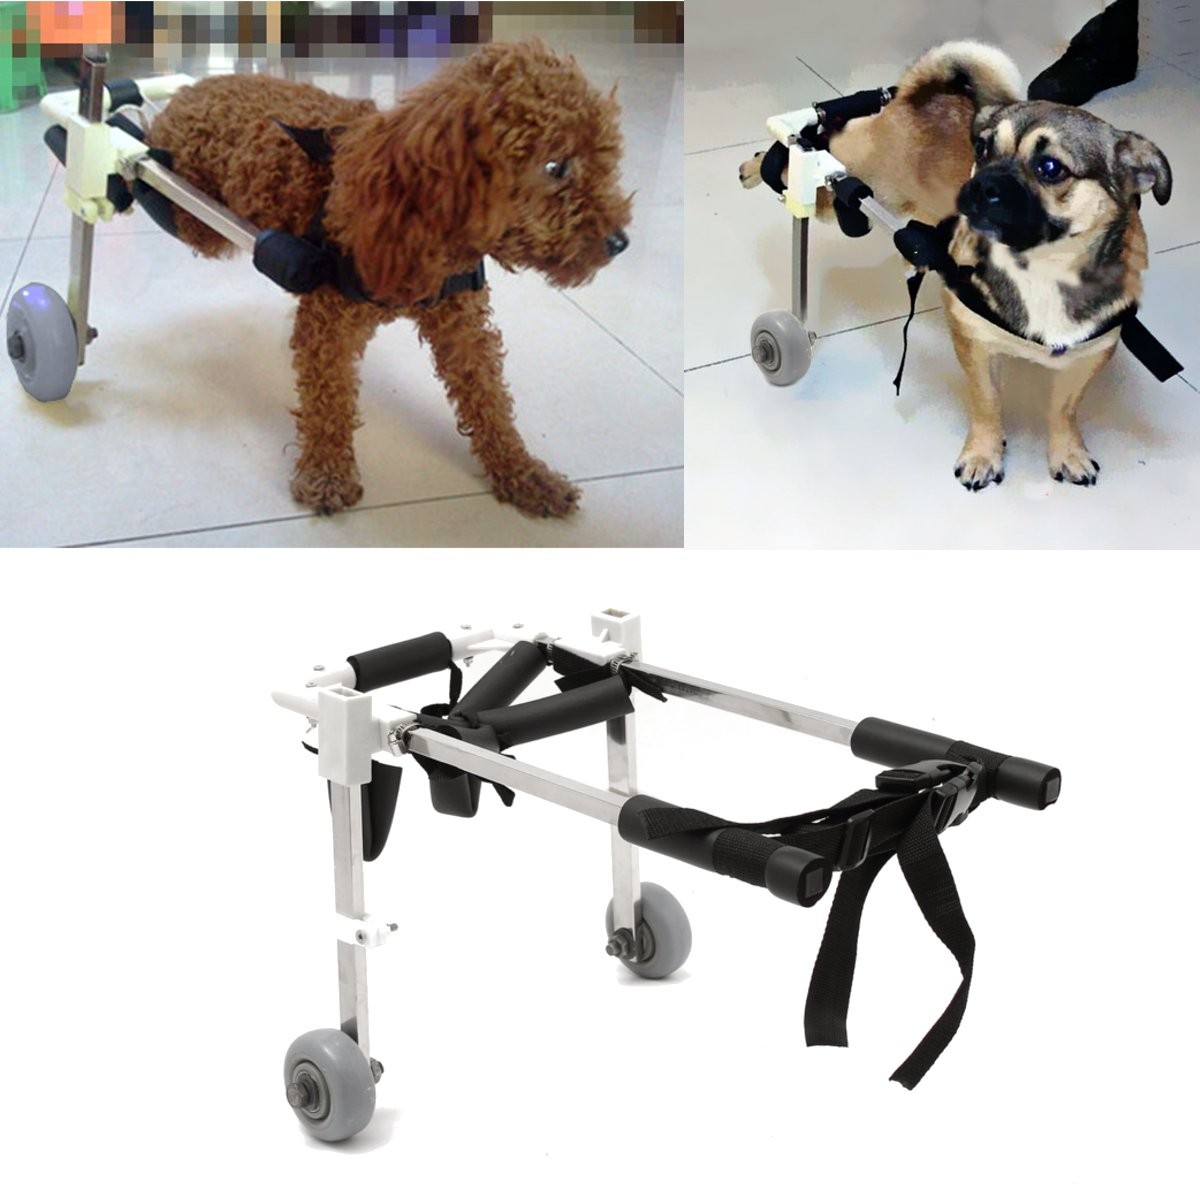 wheelchair dog posture care chair company prices 10 pet cart height for handicapped hind legs stainless steel walmart com